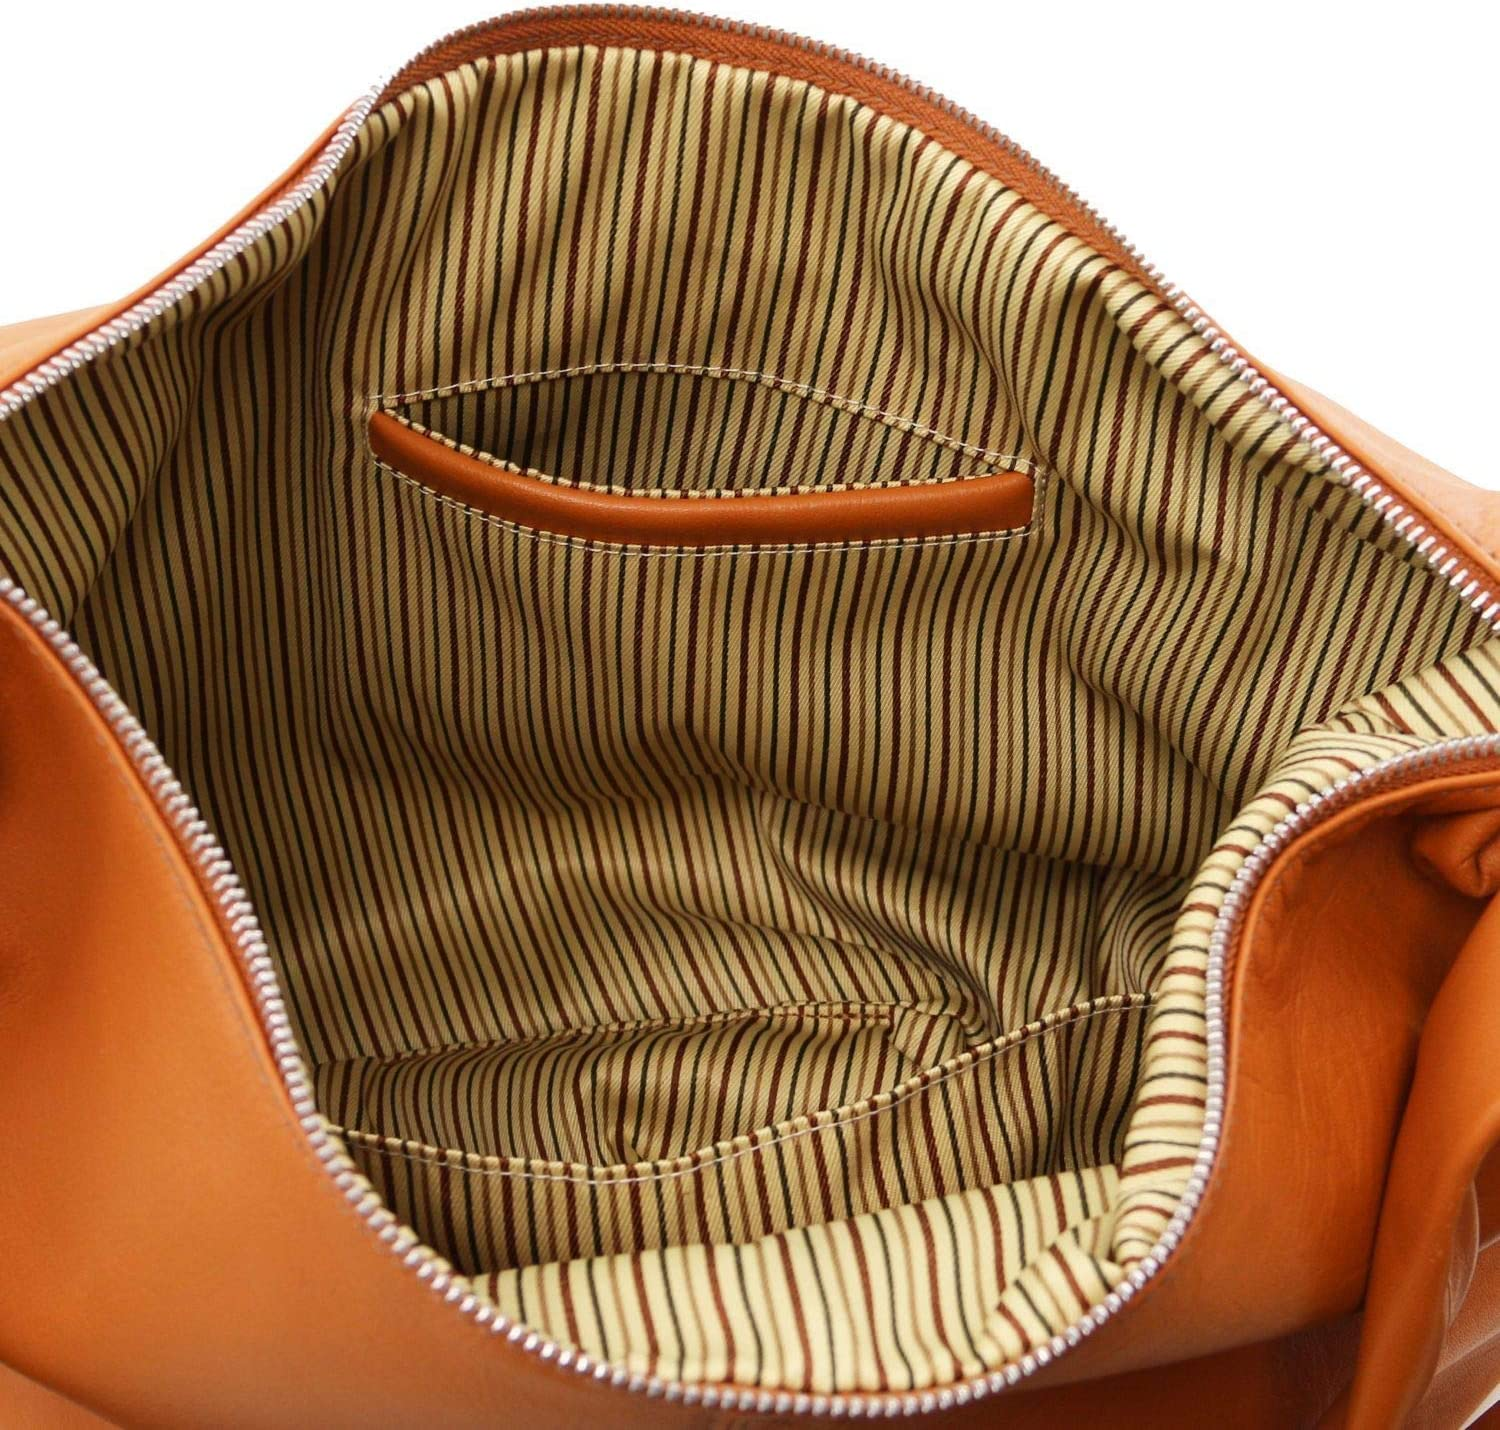 Tuscany Leather Yvette Sac Hobo en Cuir Souple Cannelle Cannelle